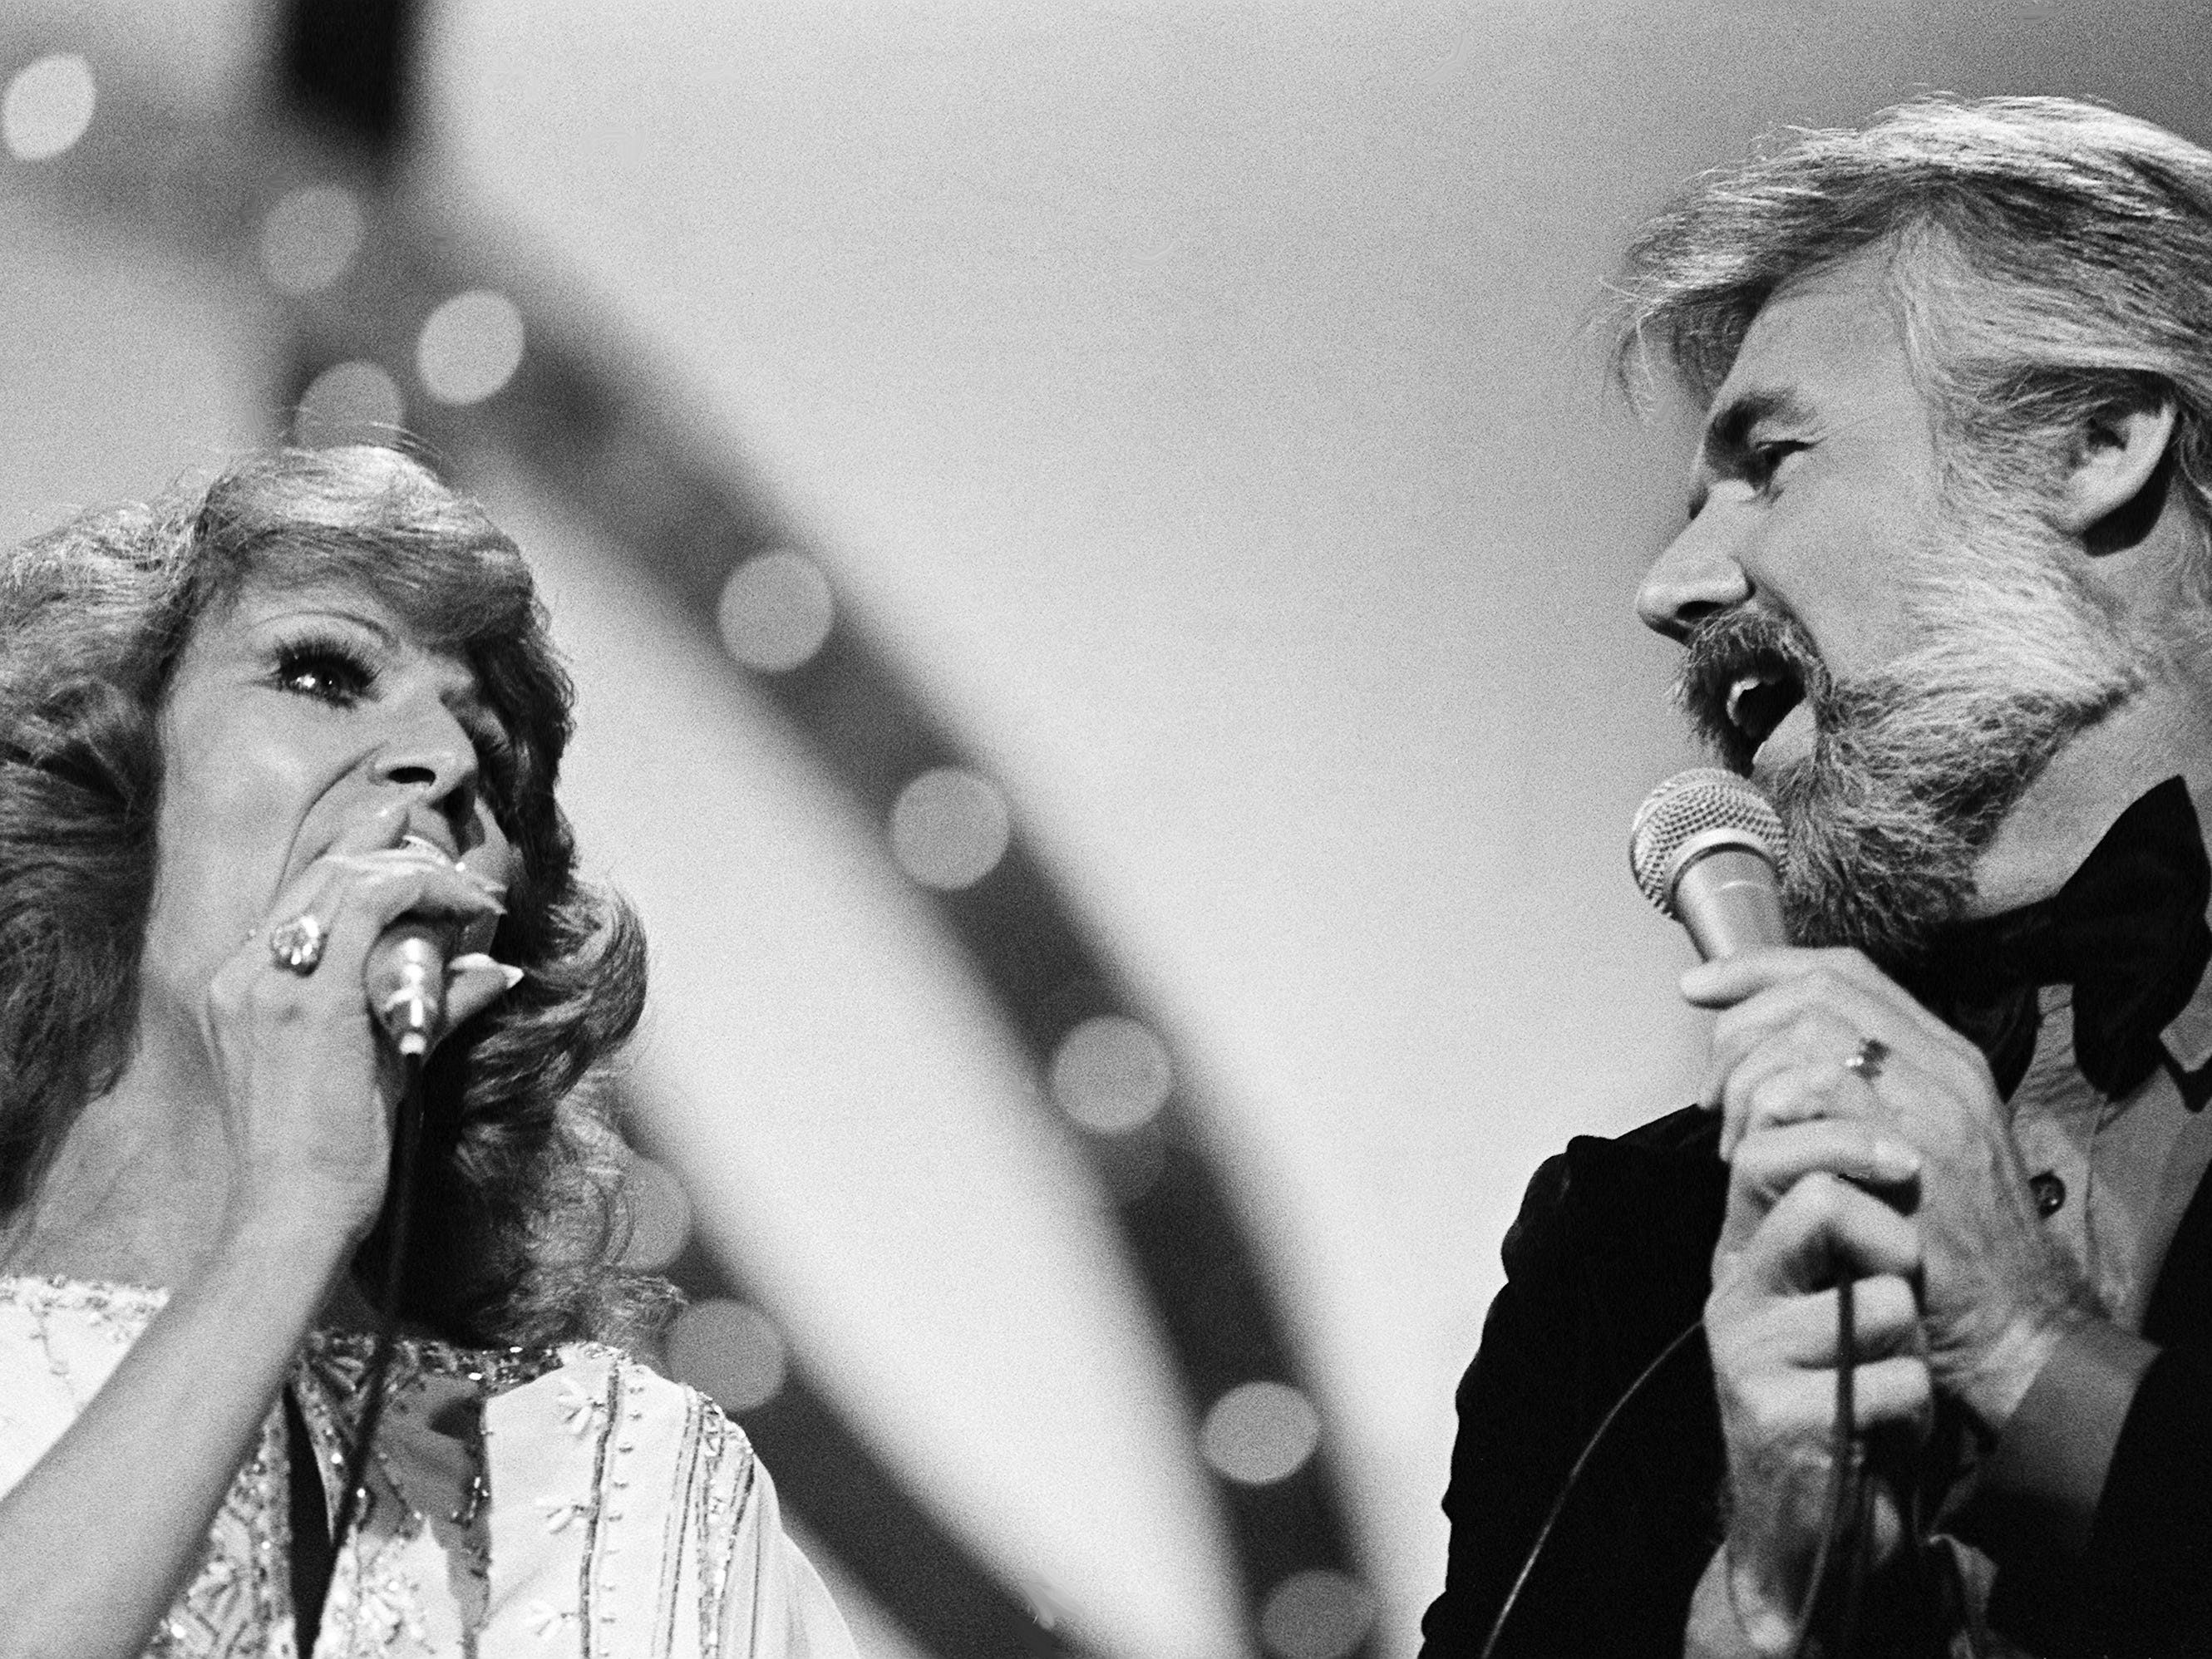 Dottie West and Kenny Rogers perform together during the 12th annual CMA Awards show at the Grand Ole Opry House on Oct. 9, 1978.